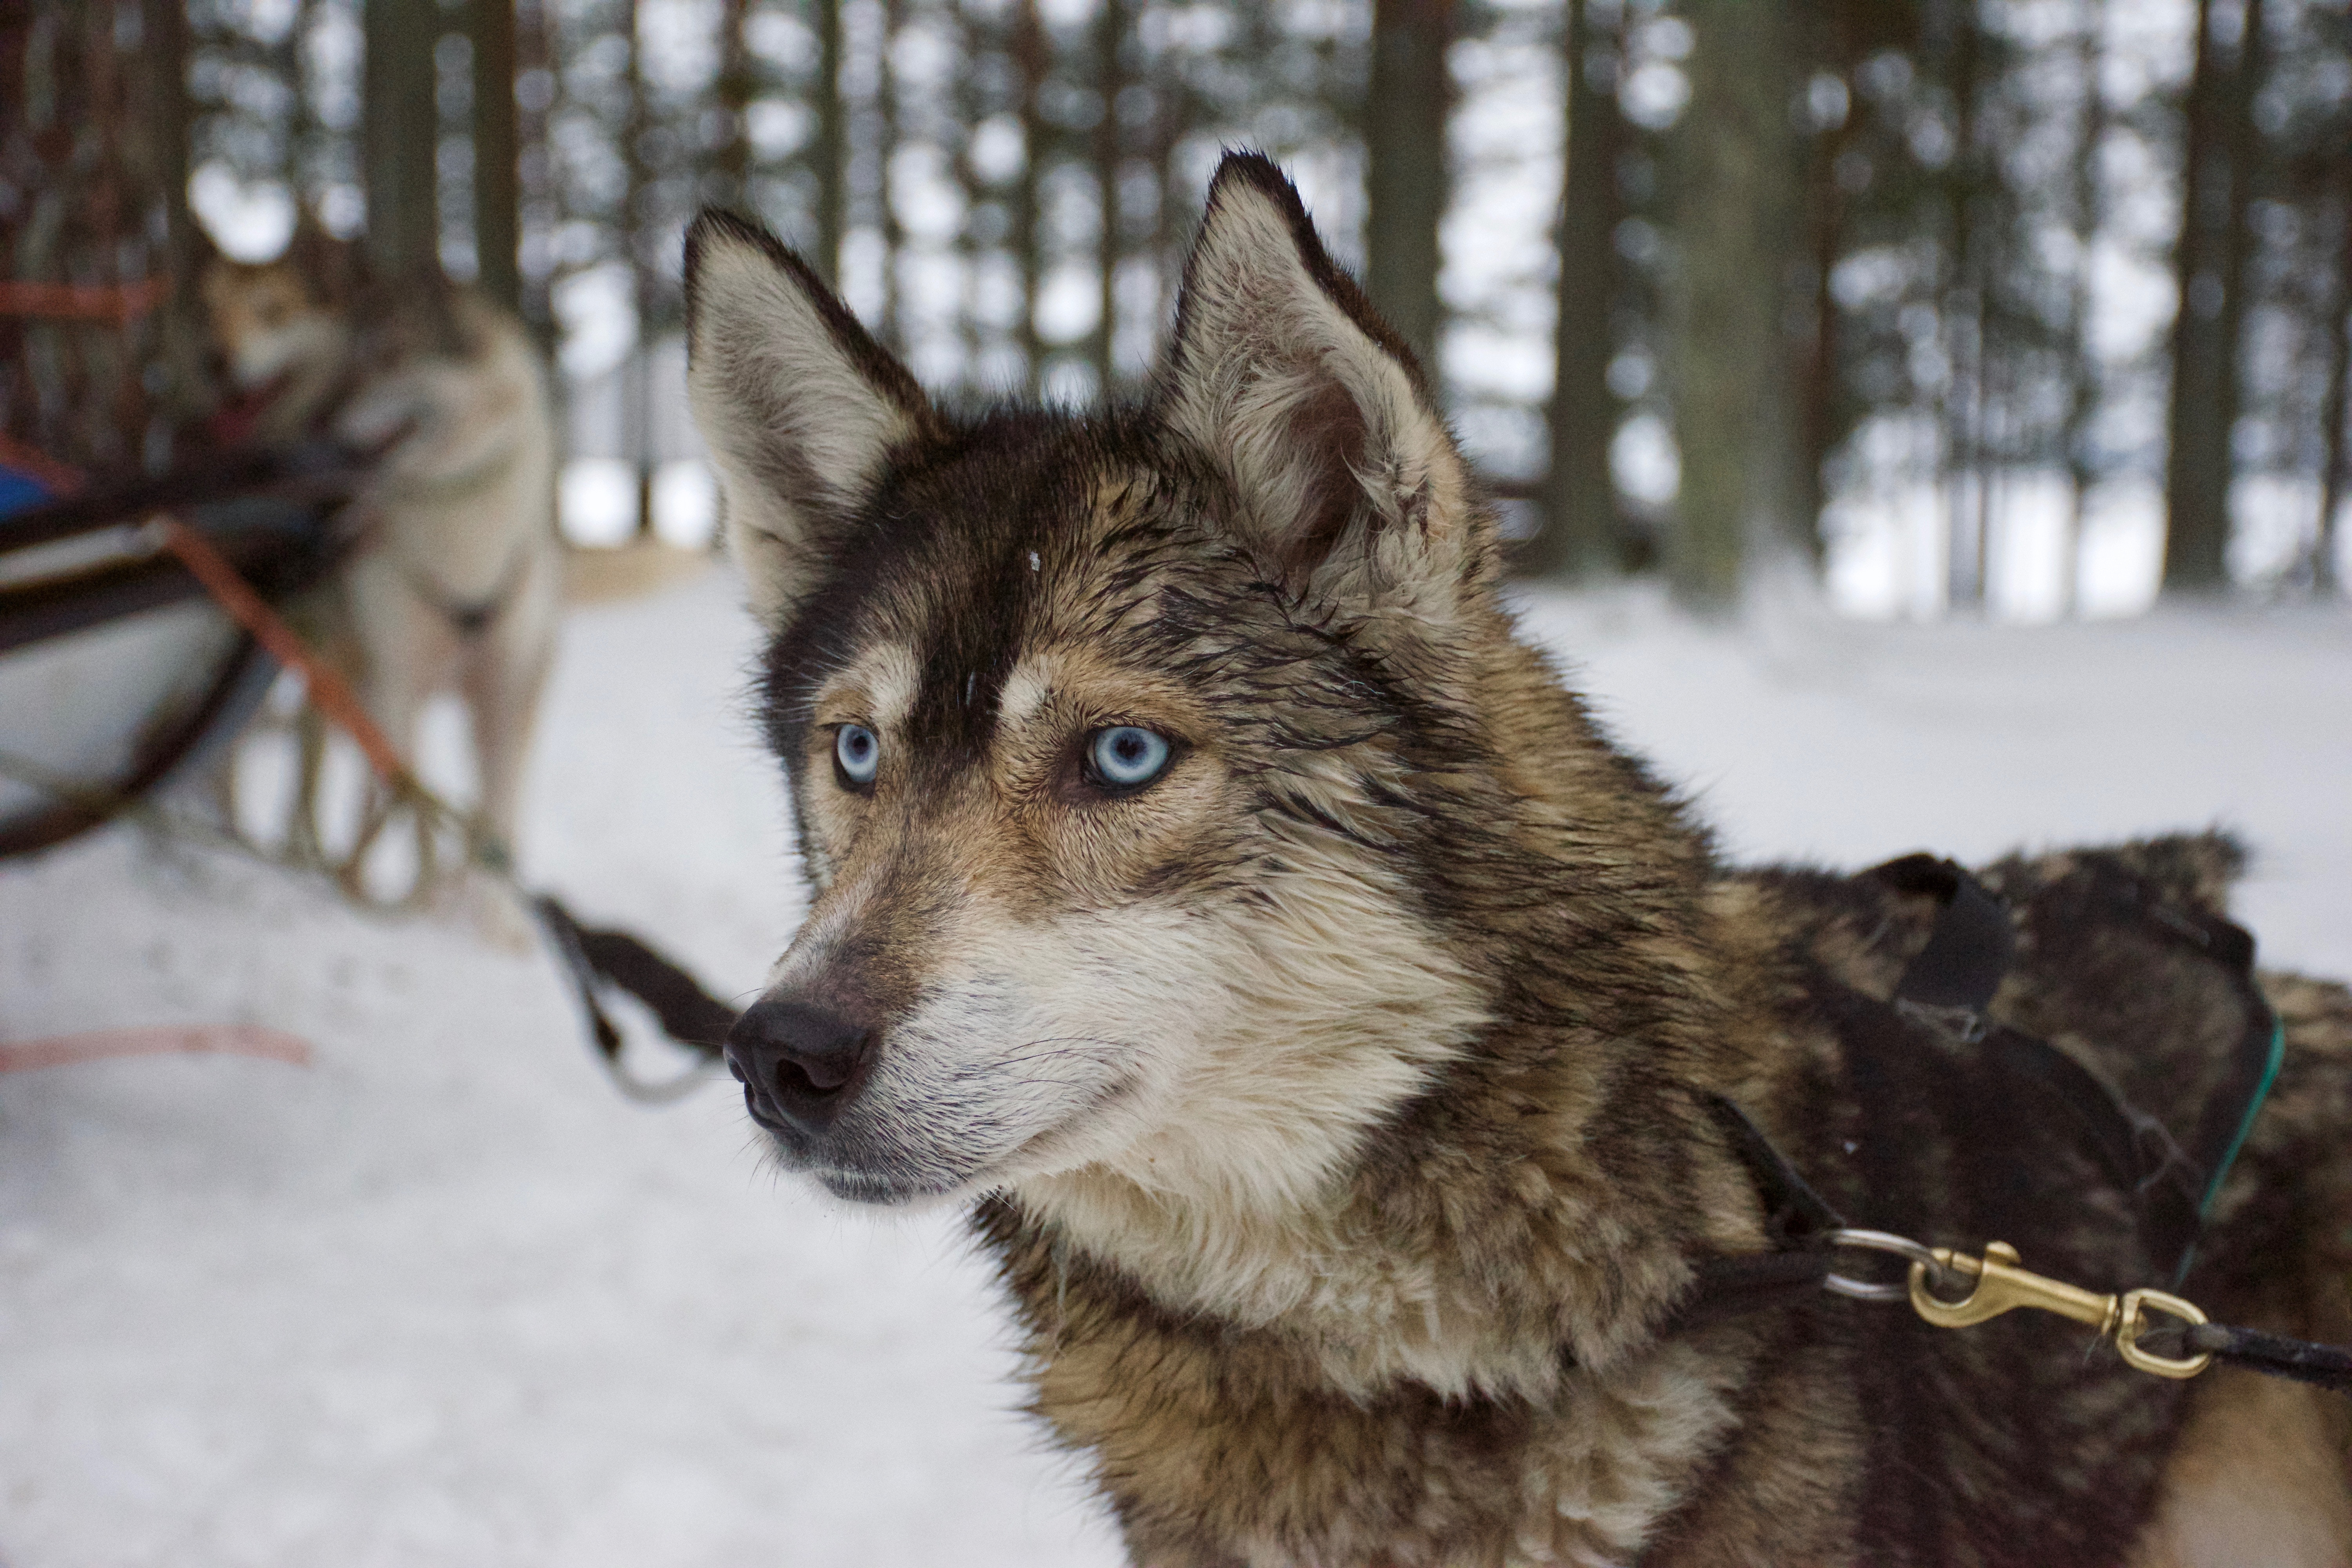 136877 download wallpaper Animals, Husky, Haska, Muzzle, Dog, Blue Eyed, Blue-Eyed screensavers and pictures for free